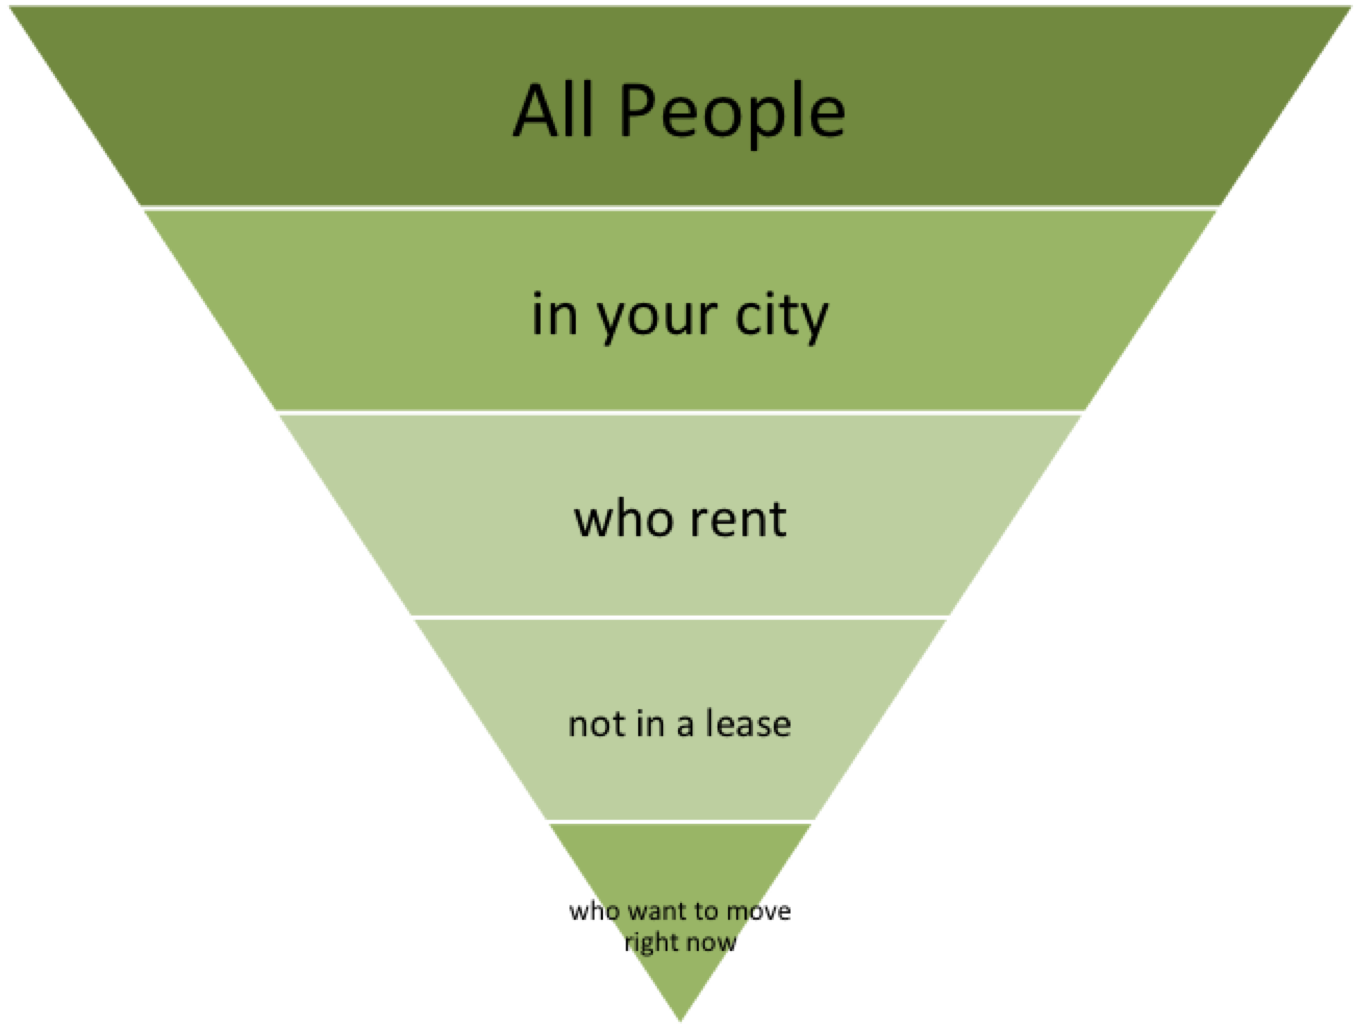 Photo credit: https://www.searchenginejournal.com/optimizing-real-estate-ppc-campaigns/228419/